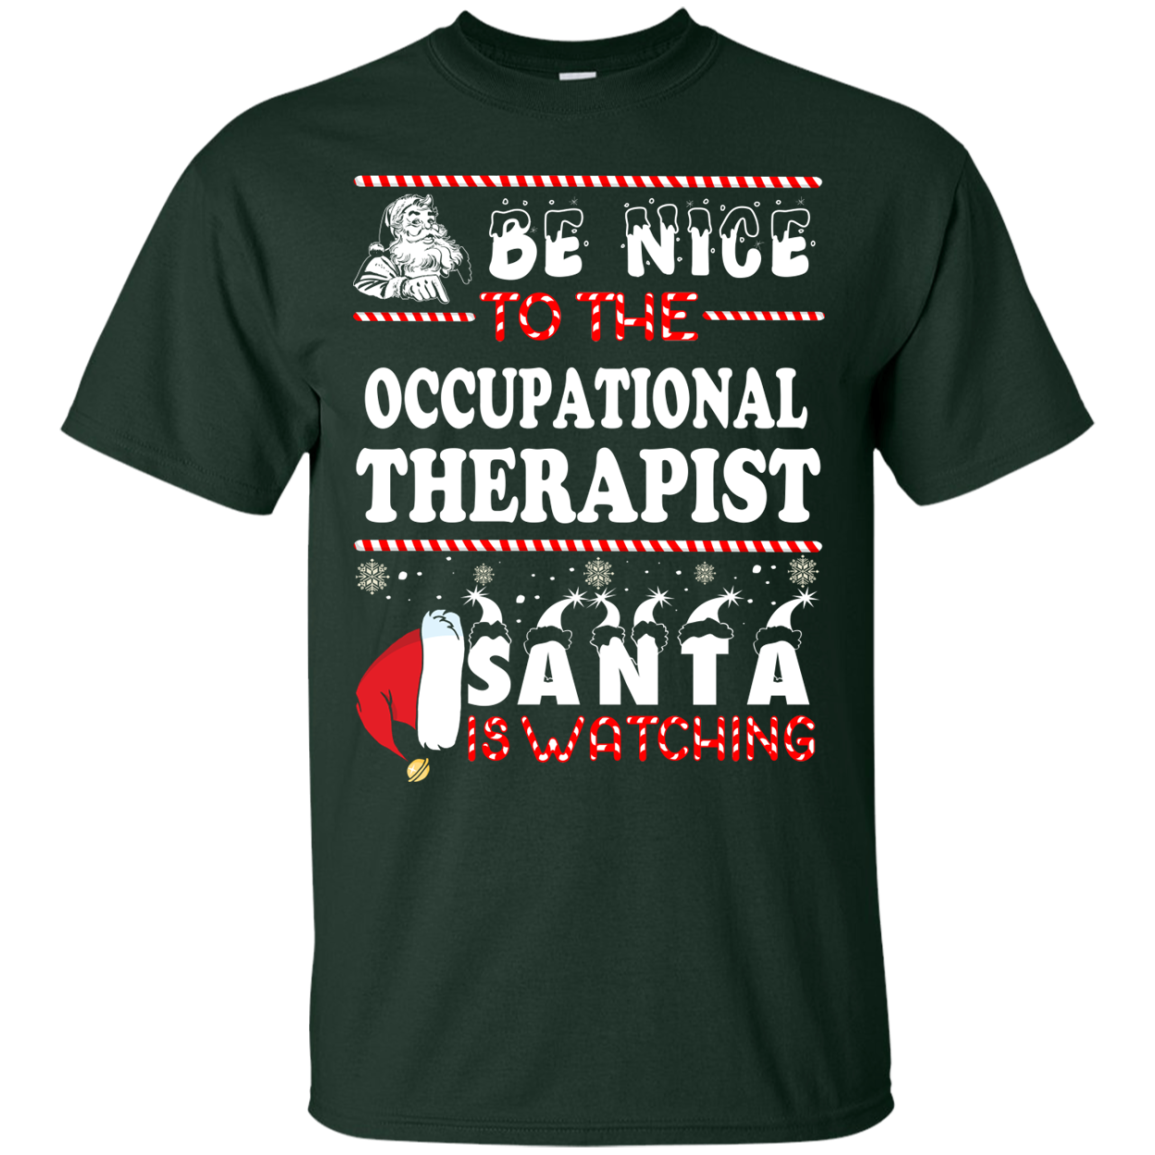 Be Nice To The Occupational Therapist Santa Is Watching Sweatshirt, T-Shirt